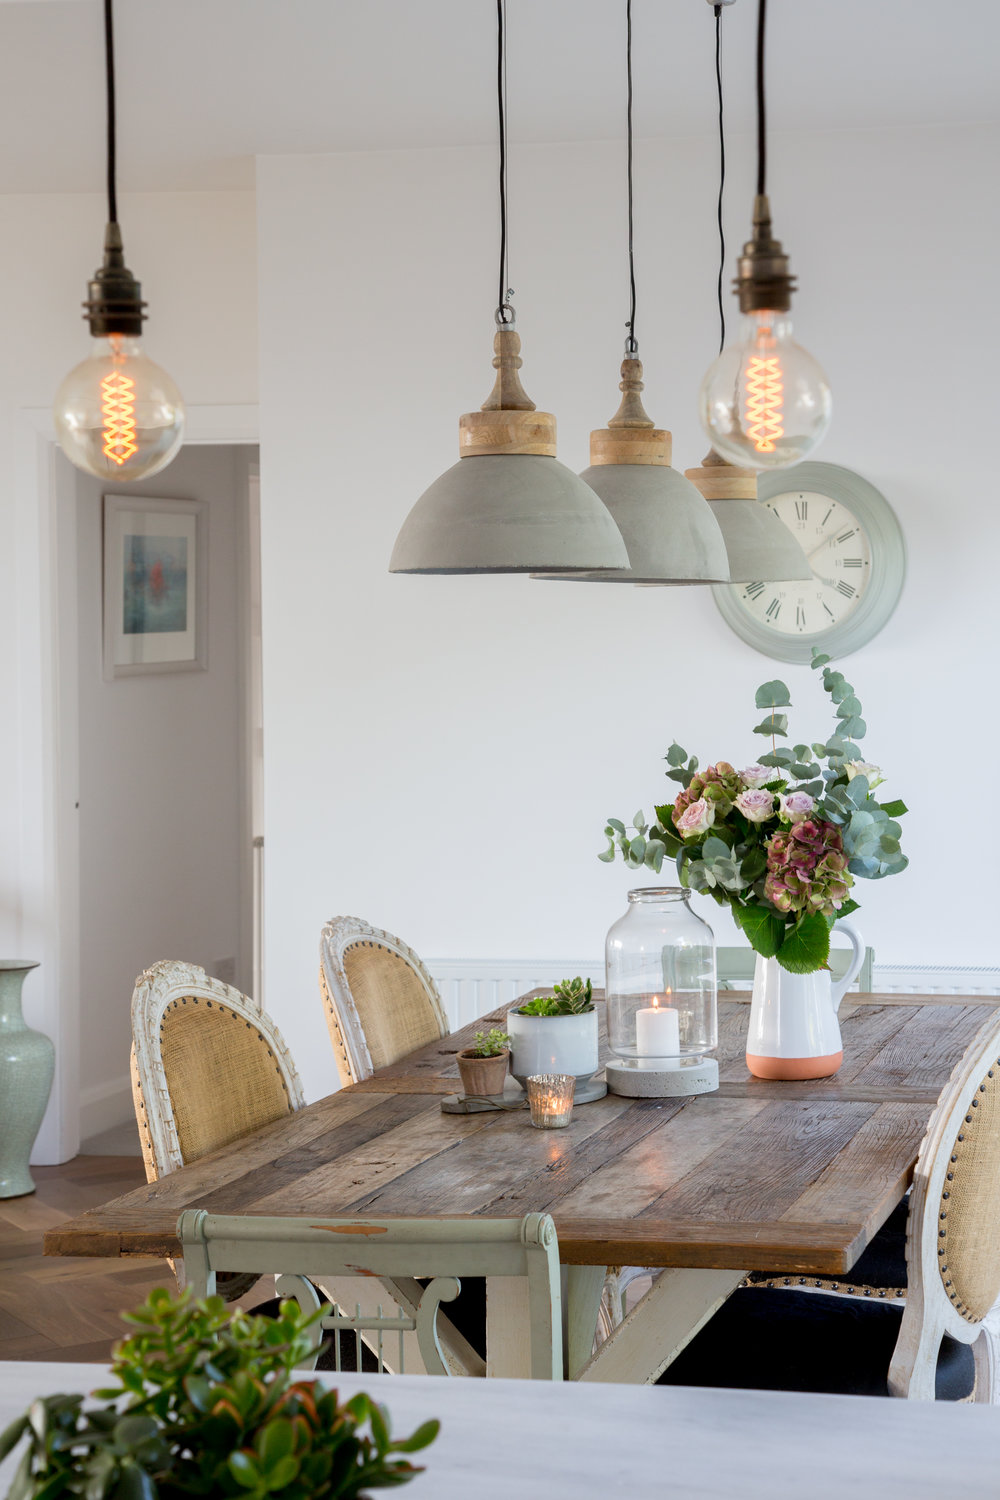 Lamb_Design_Paper_and_Moon_Emma_Lynch_Louise_Dockery_Scandi_French_Danish_homeware_Irish_business_interior_designer_dining_room_burlap_chairs.jpg